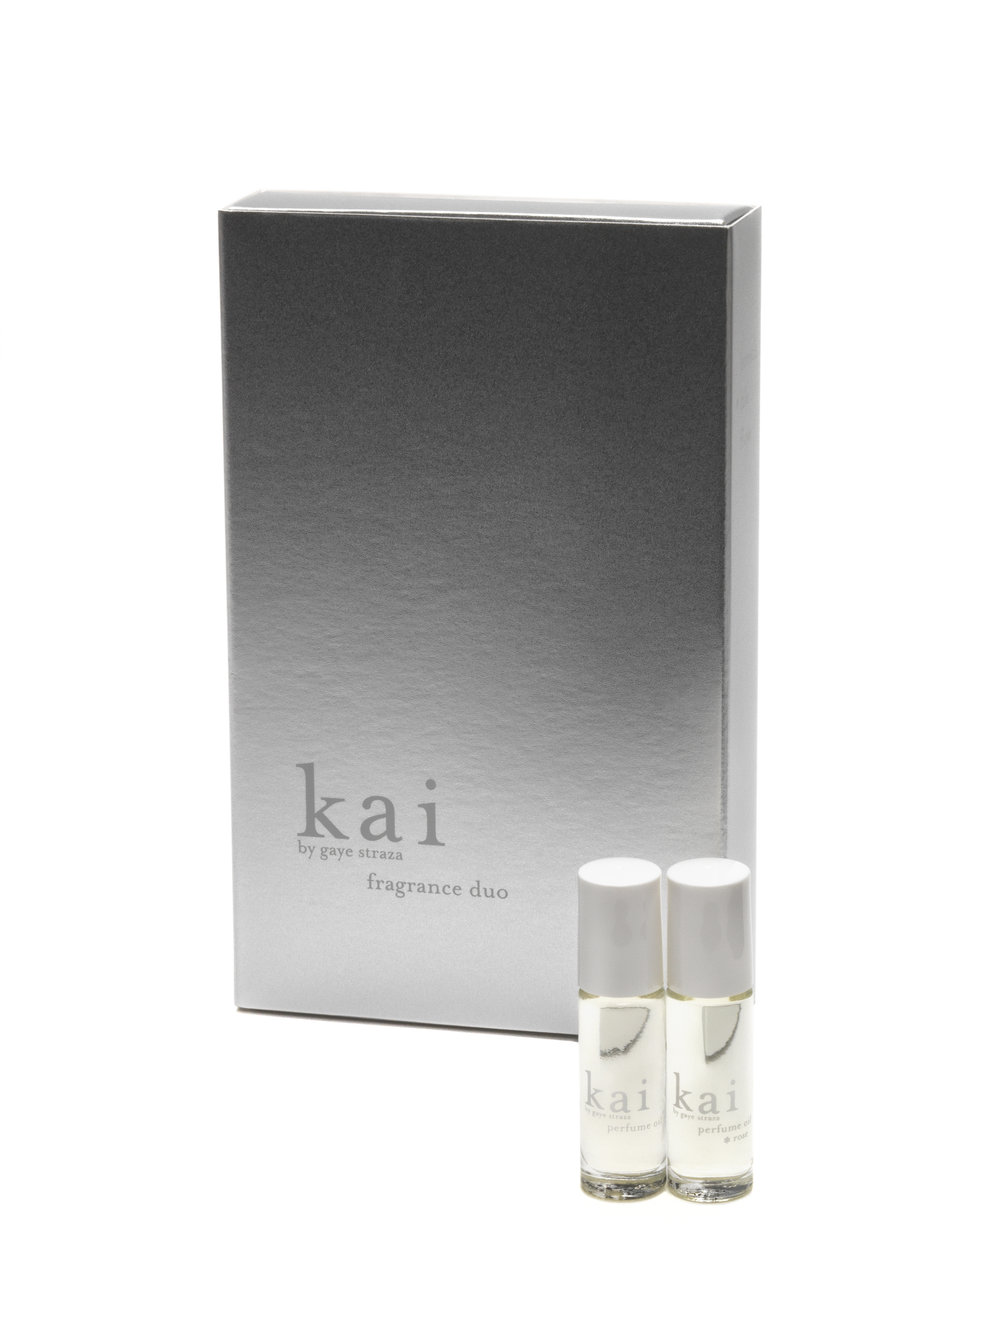 kai fragrance duo.jpg